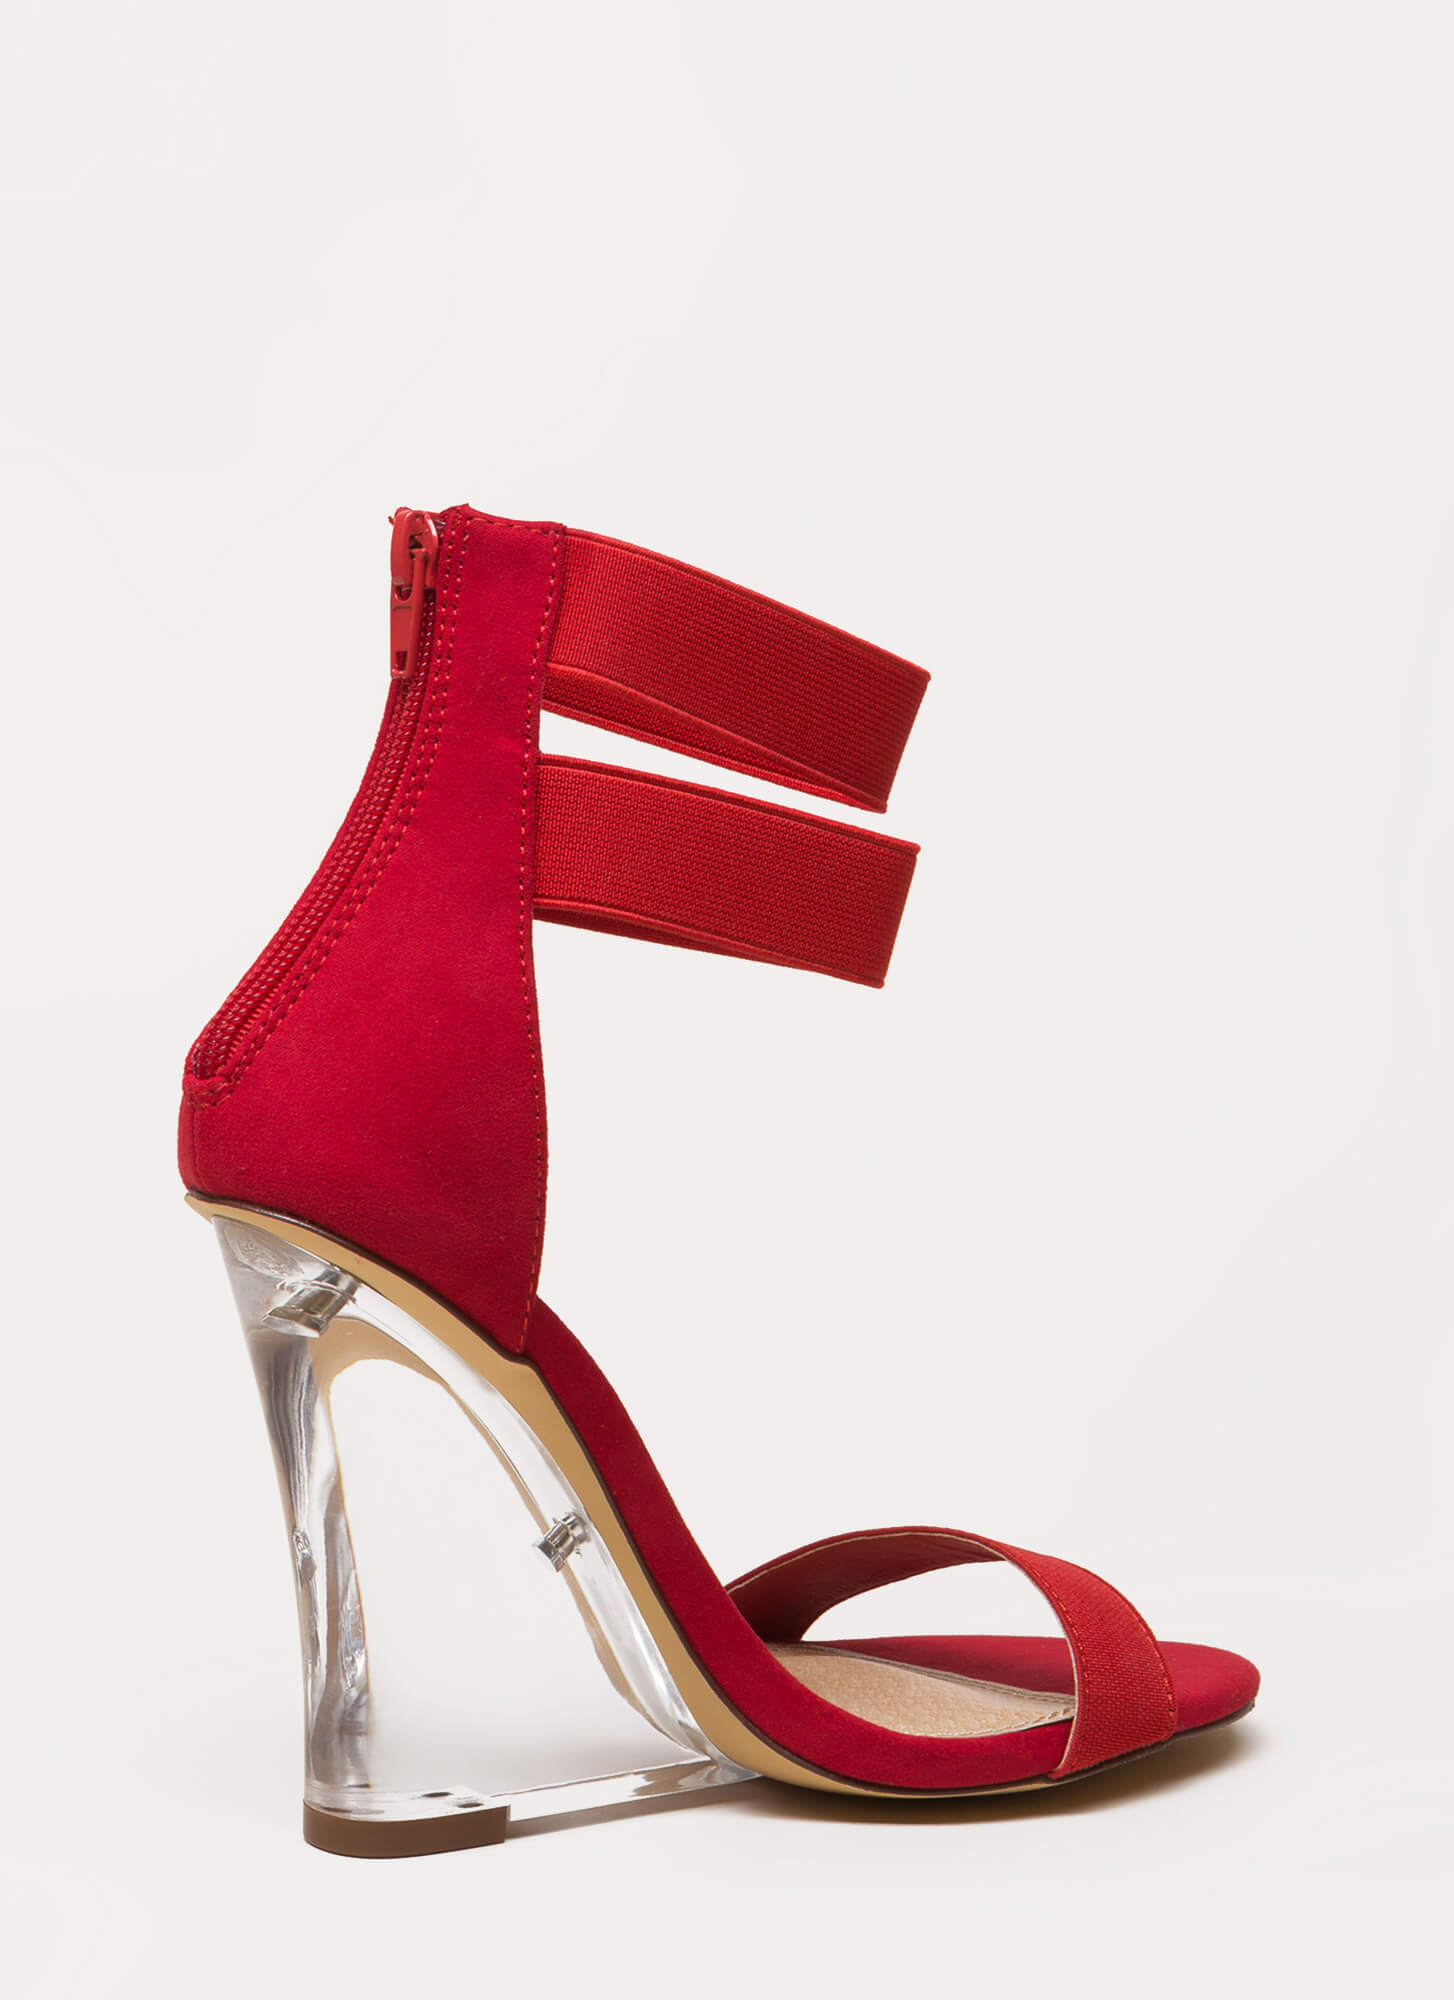 Clear The Room Strappy Lucite Wedges RED (Final Sale)